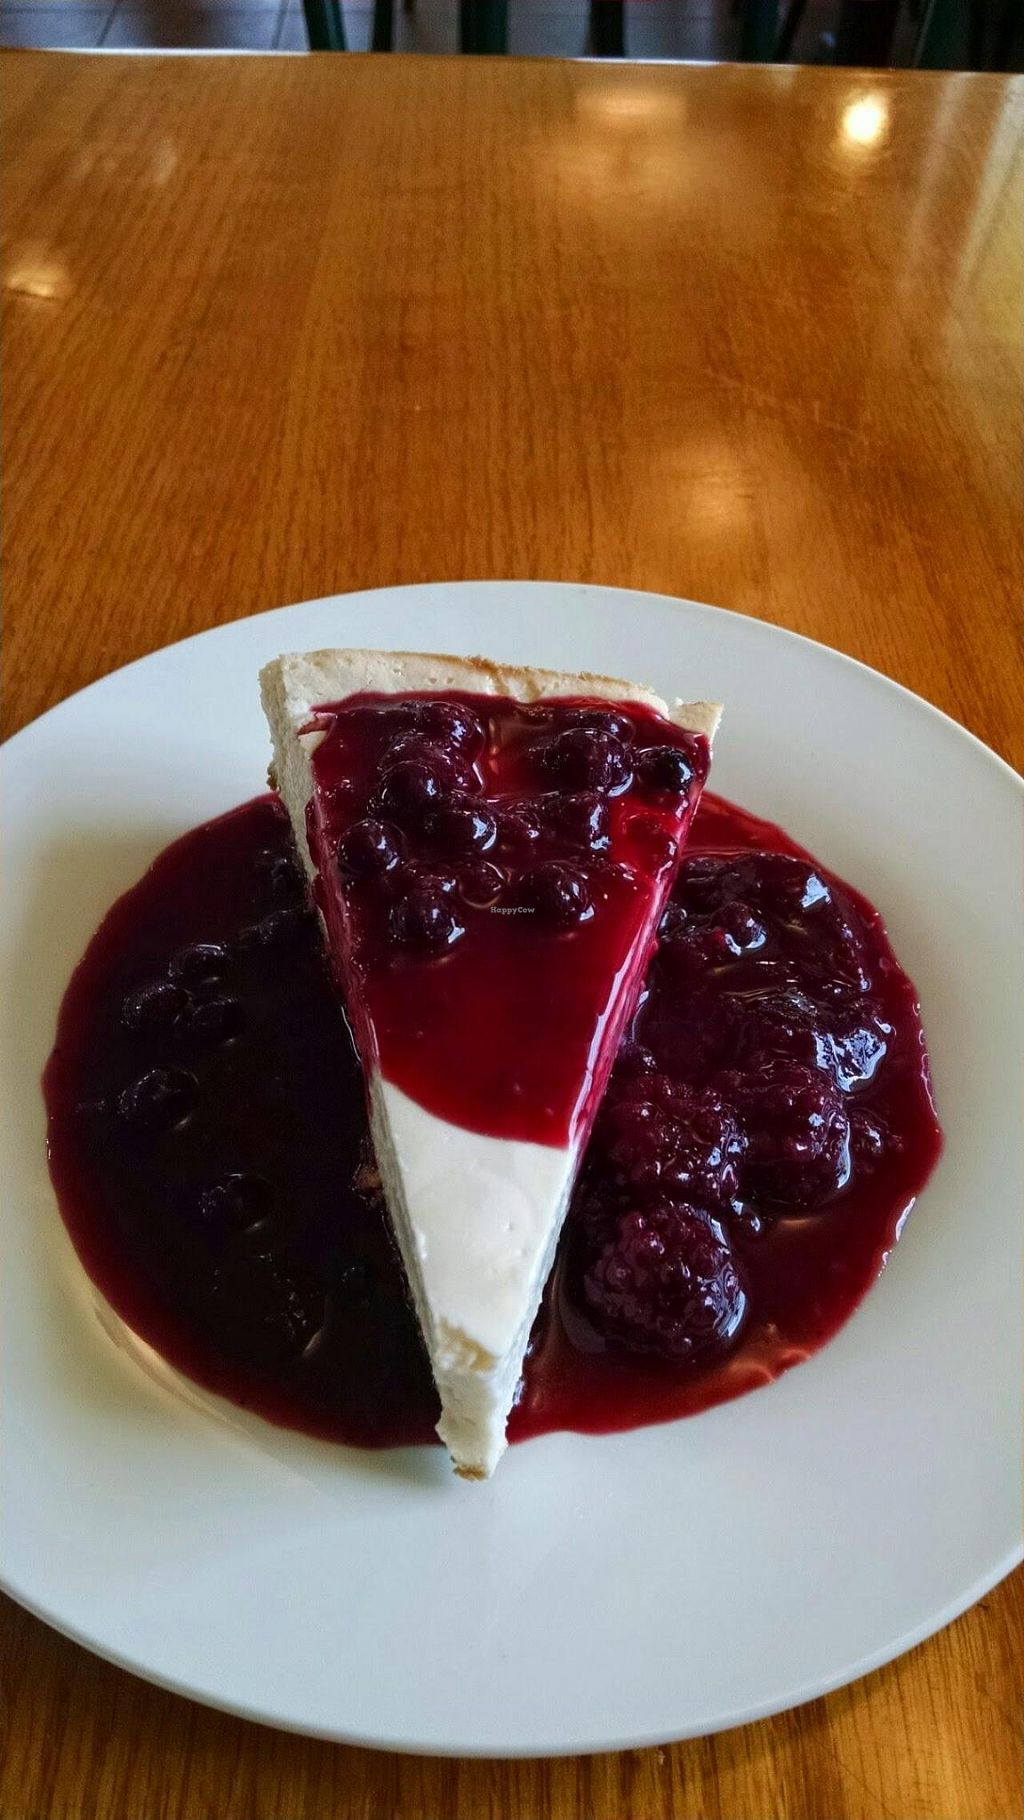 """Photo of The Olive Branch Cafe  by <a href=""""/members/profile/mpalmatier"""">mpalmatier</a> <br/>Ark Vegan's cheesecake.. Simply divine <br/> July 31, 2014  - <a href='/contact/abuse/image/42885/75693'>Report</a>"""